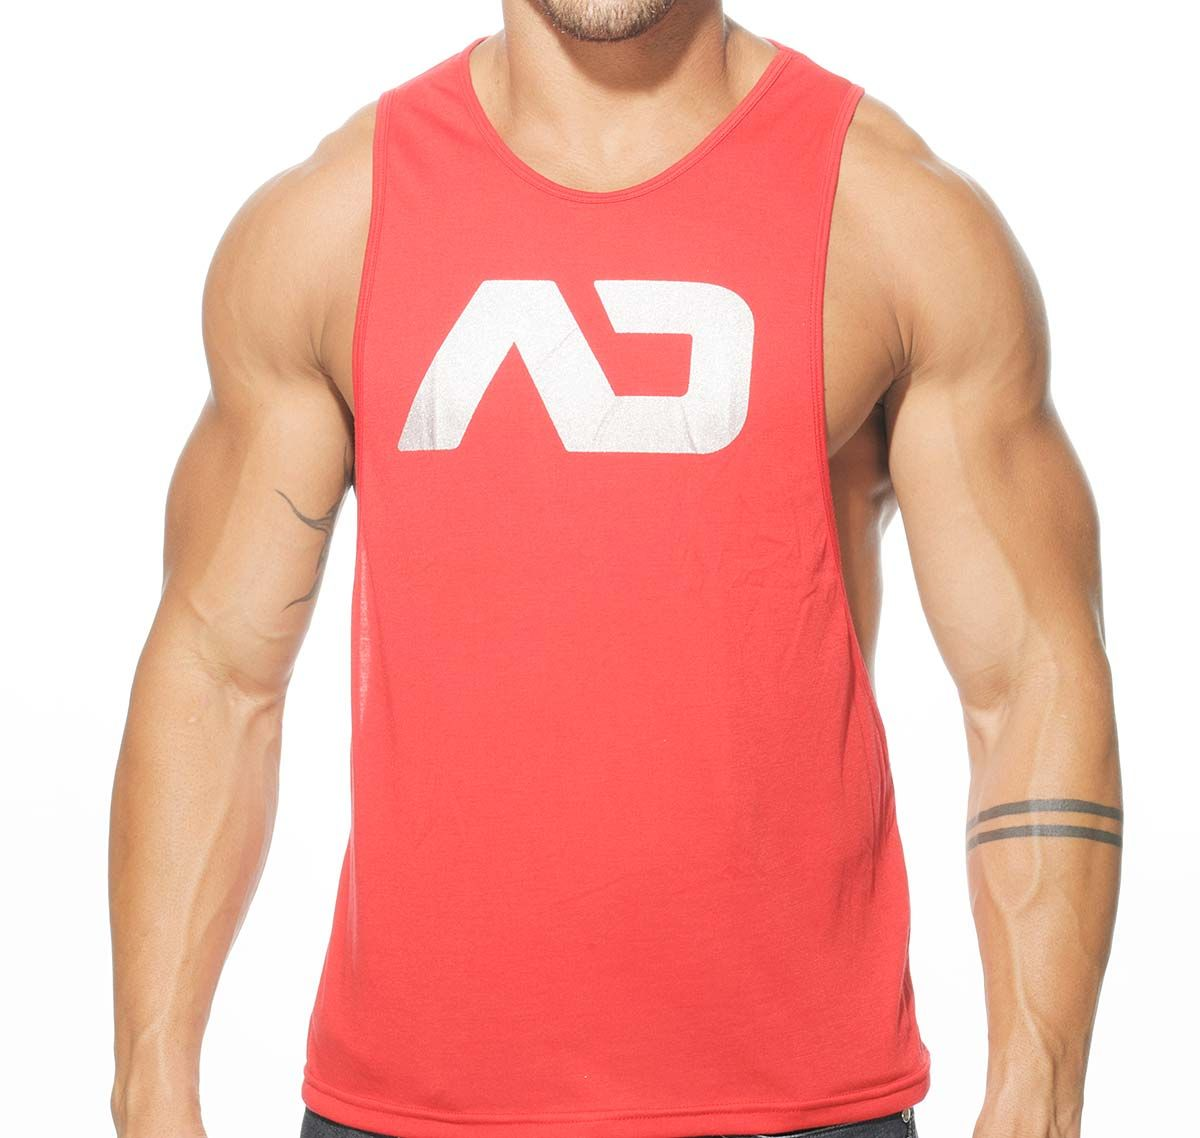 Addicted Tank Top AD LOW RIDER AD043, rot